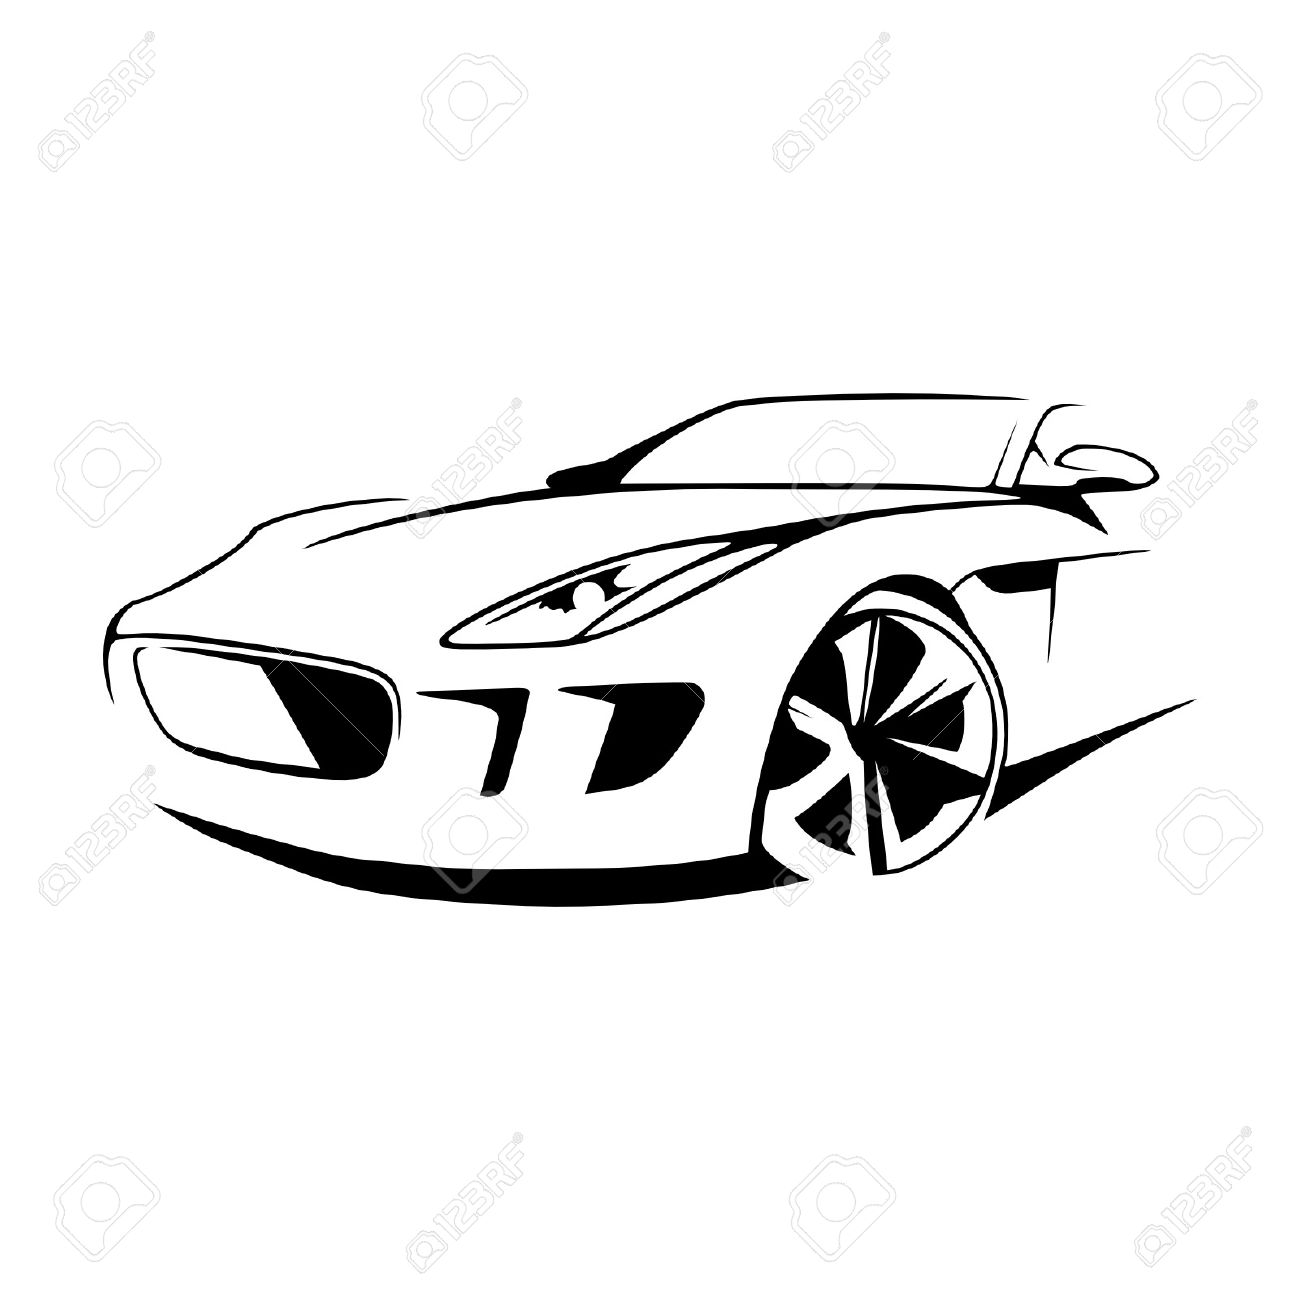 sports car silhouette vector royalty free cliparts vectors and rh 123rf com car silhouette vector free download car silhouette vector free